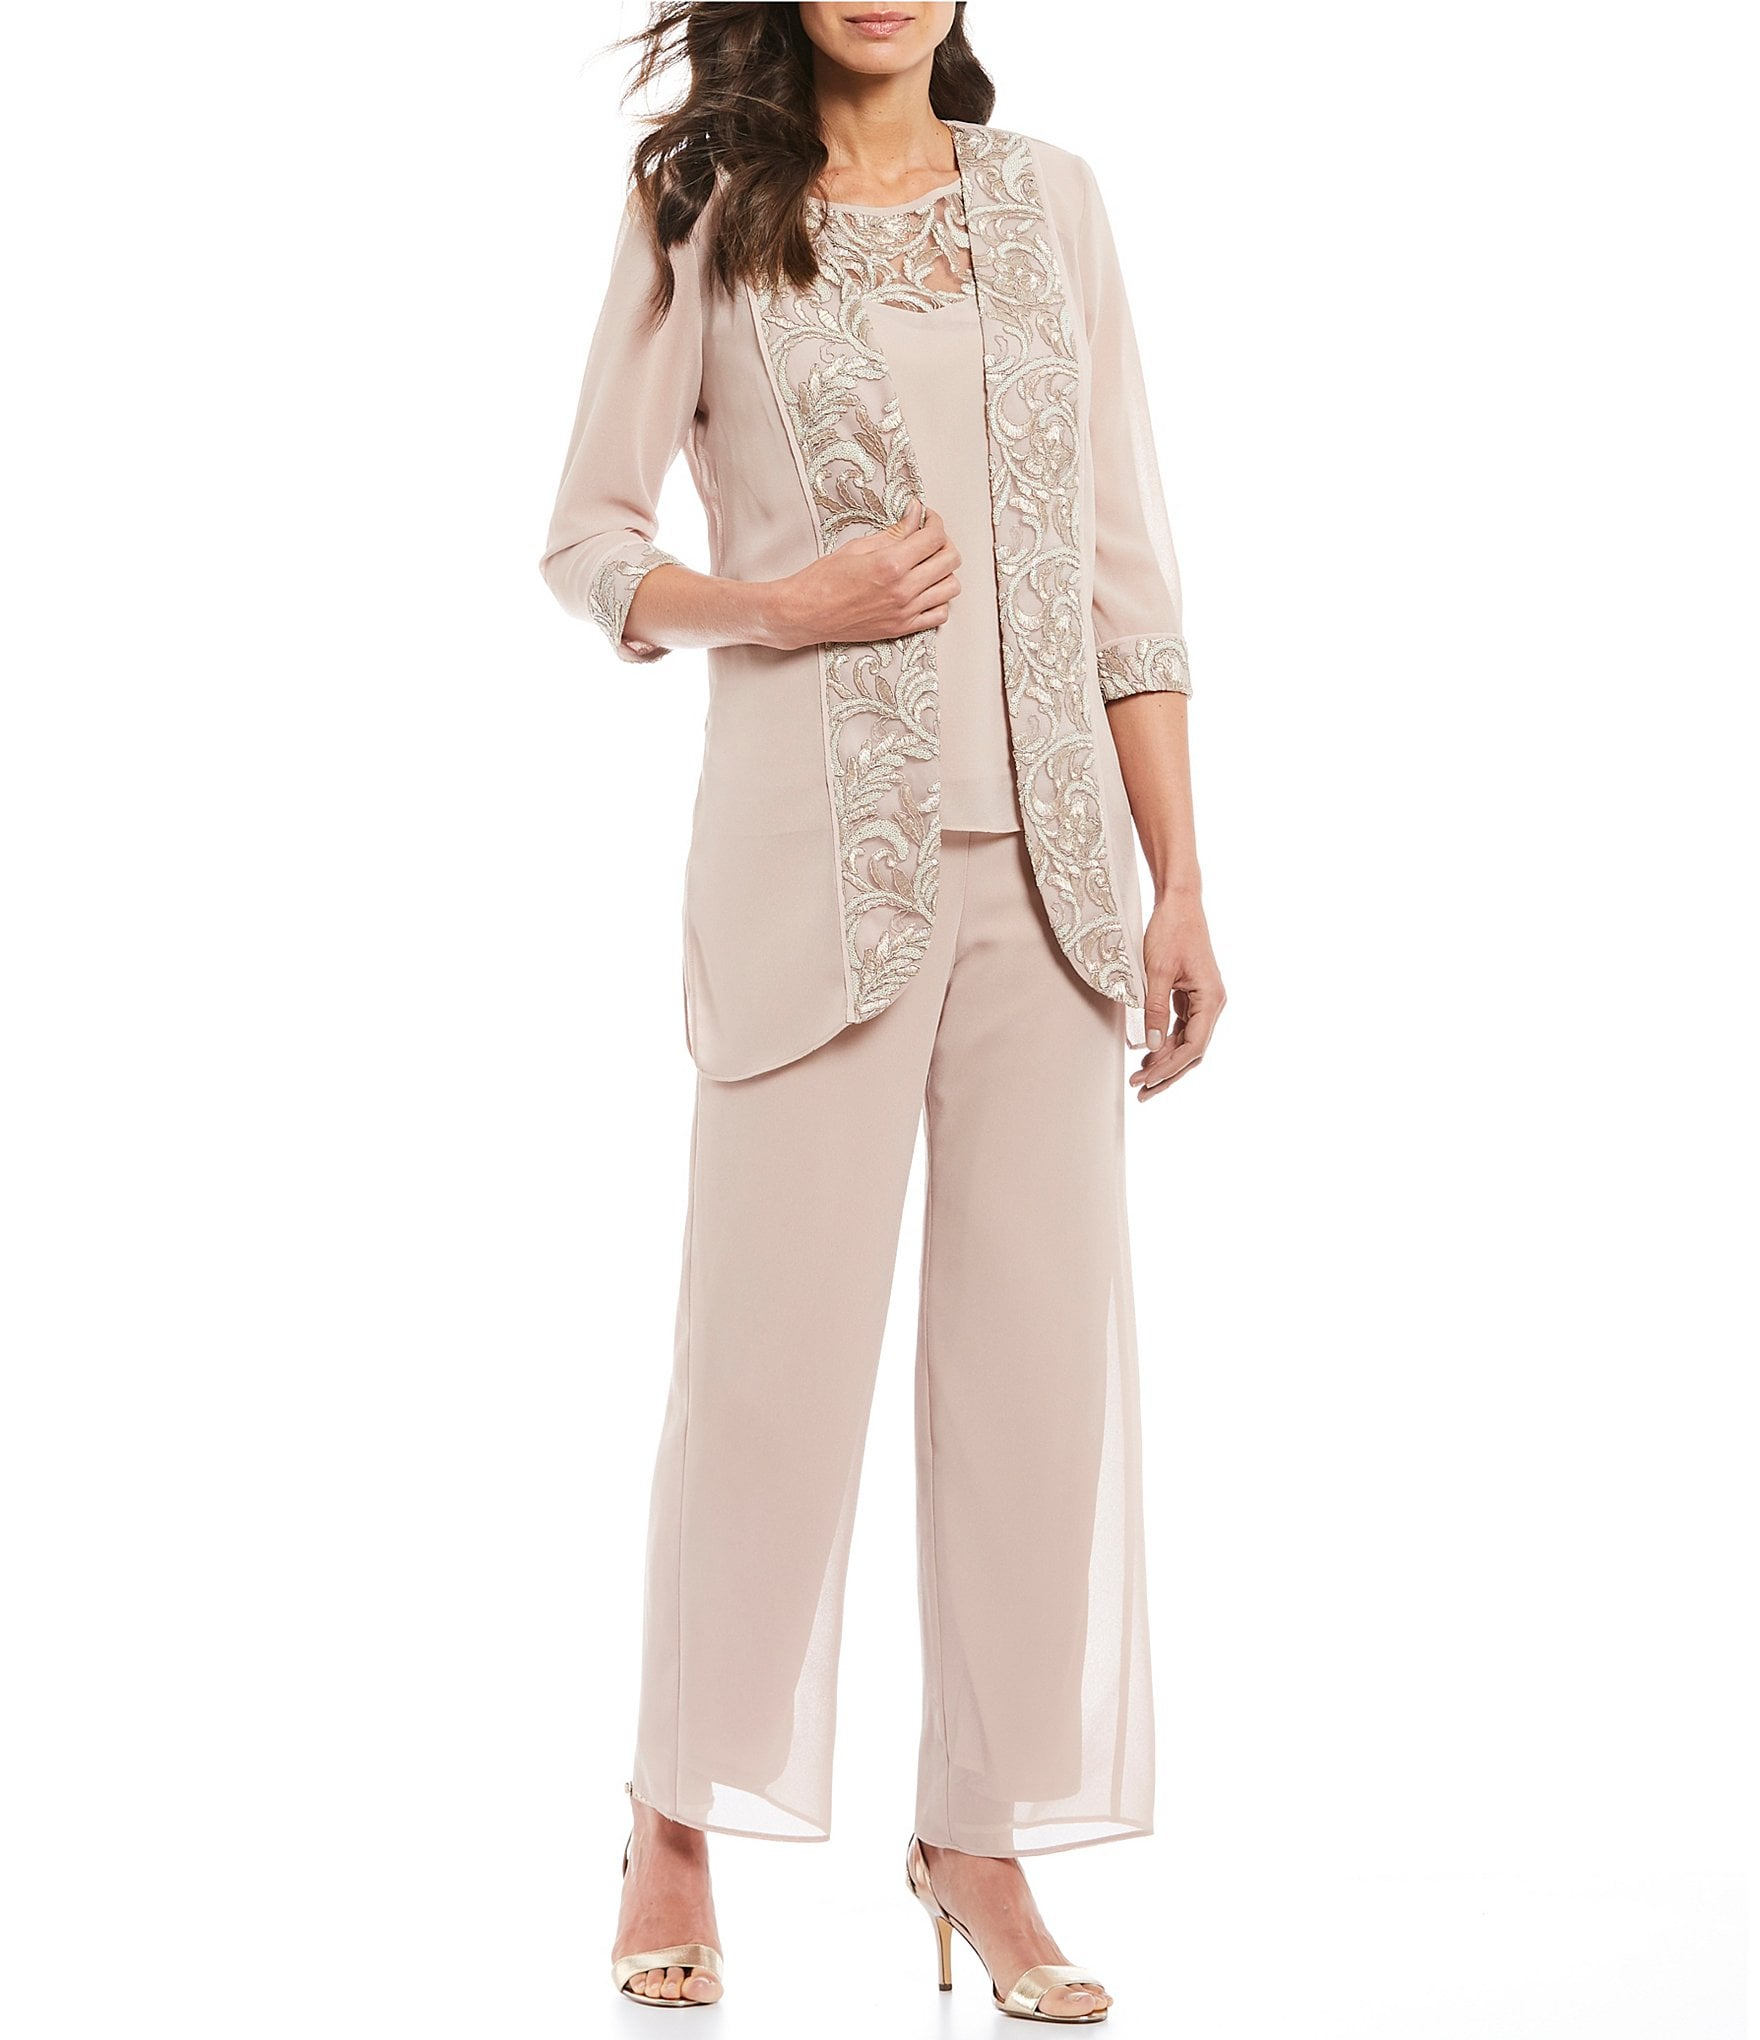 Dressy Pantsuits For A Wedding.Le Bos 3 Piece Embroidered Trim Duster Pant Set